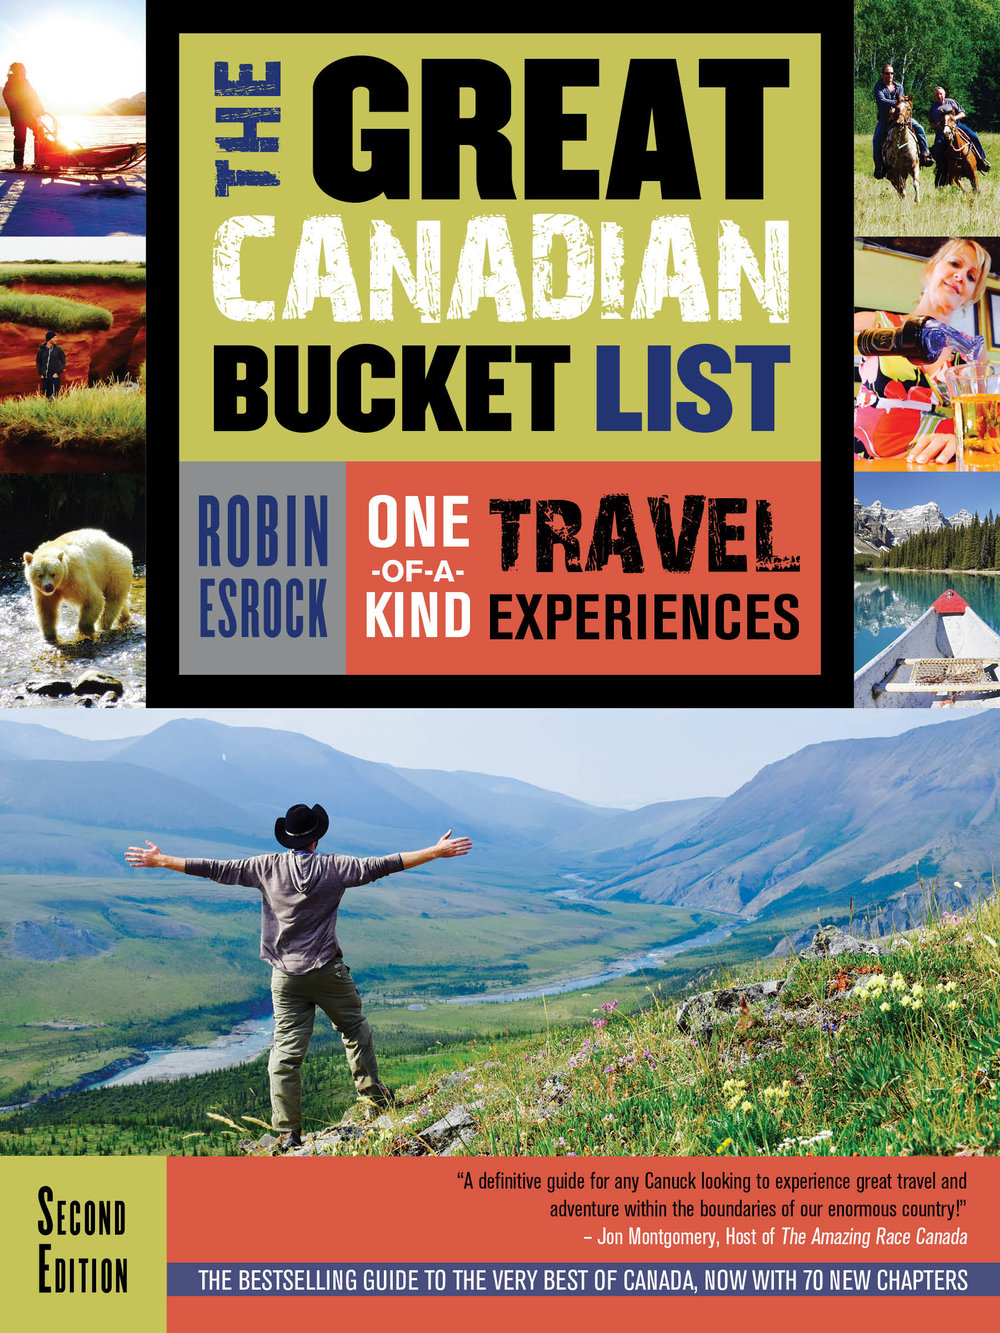 The Great Canadian Bucket List by Robin Esrock